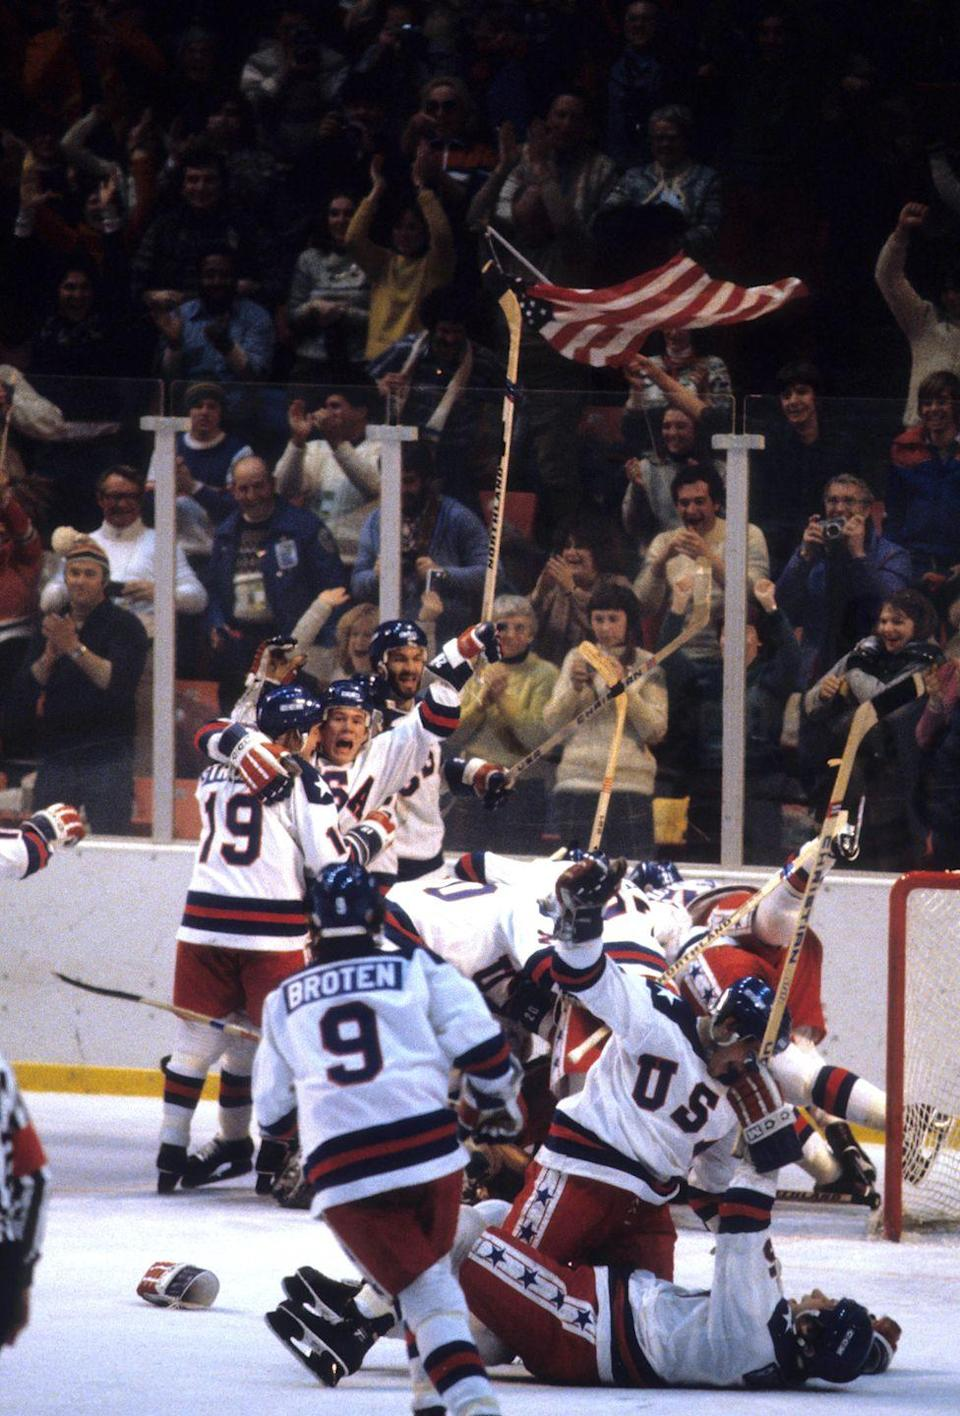 <p>1980. The United States national team, composed entirely of amateur and student hockey players, defeats the Soviet Union national team in the Winter Olympic Games.</p>